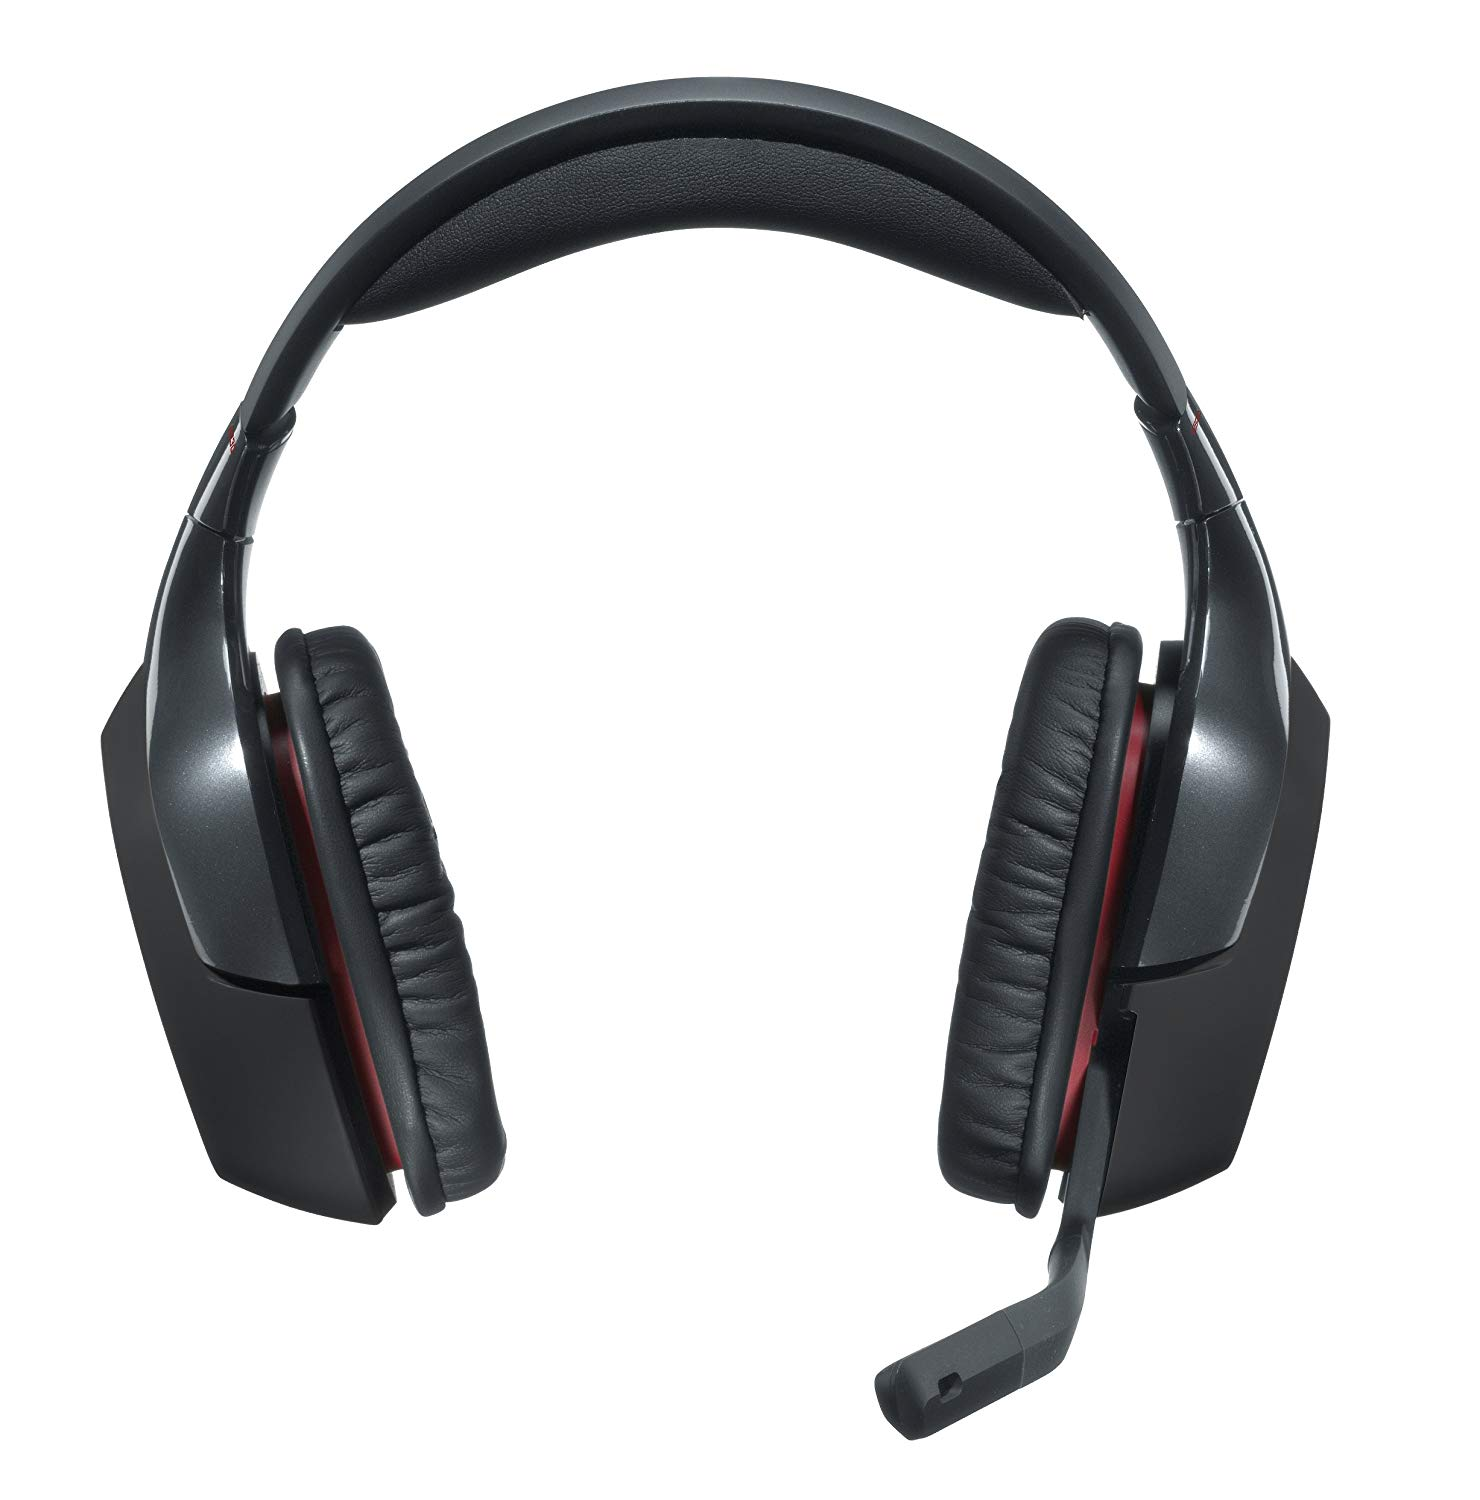 G930 GAMING HEADSET